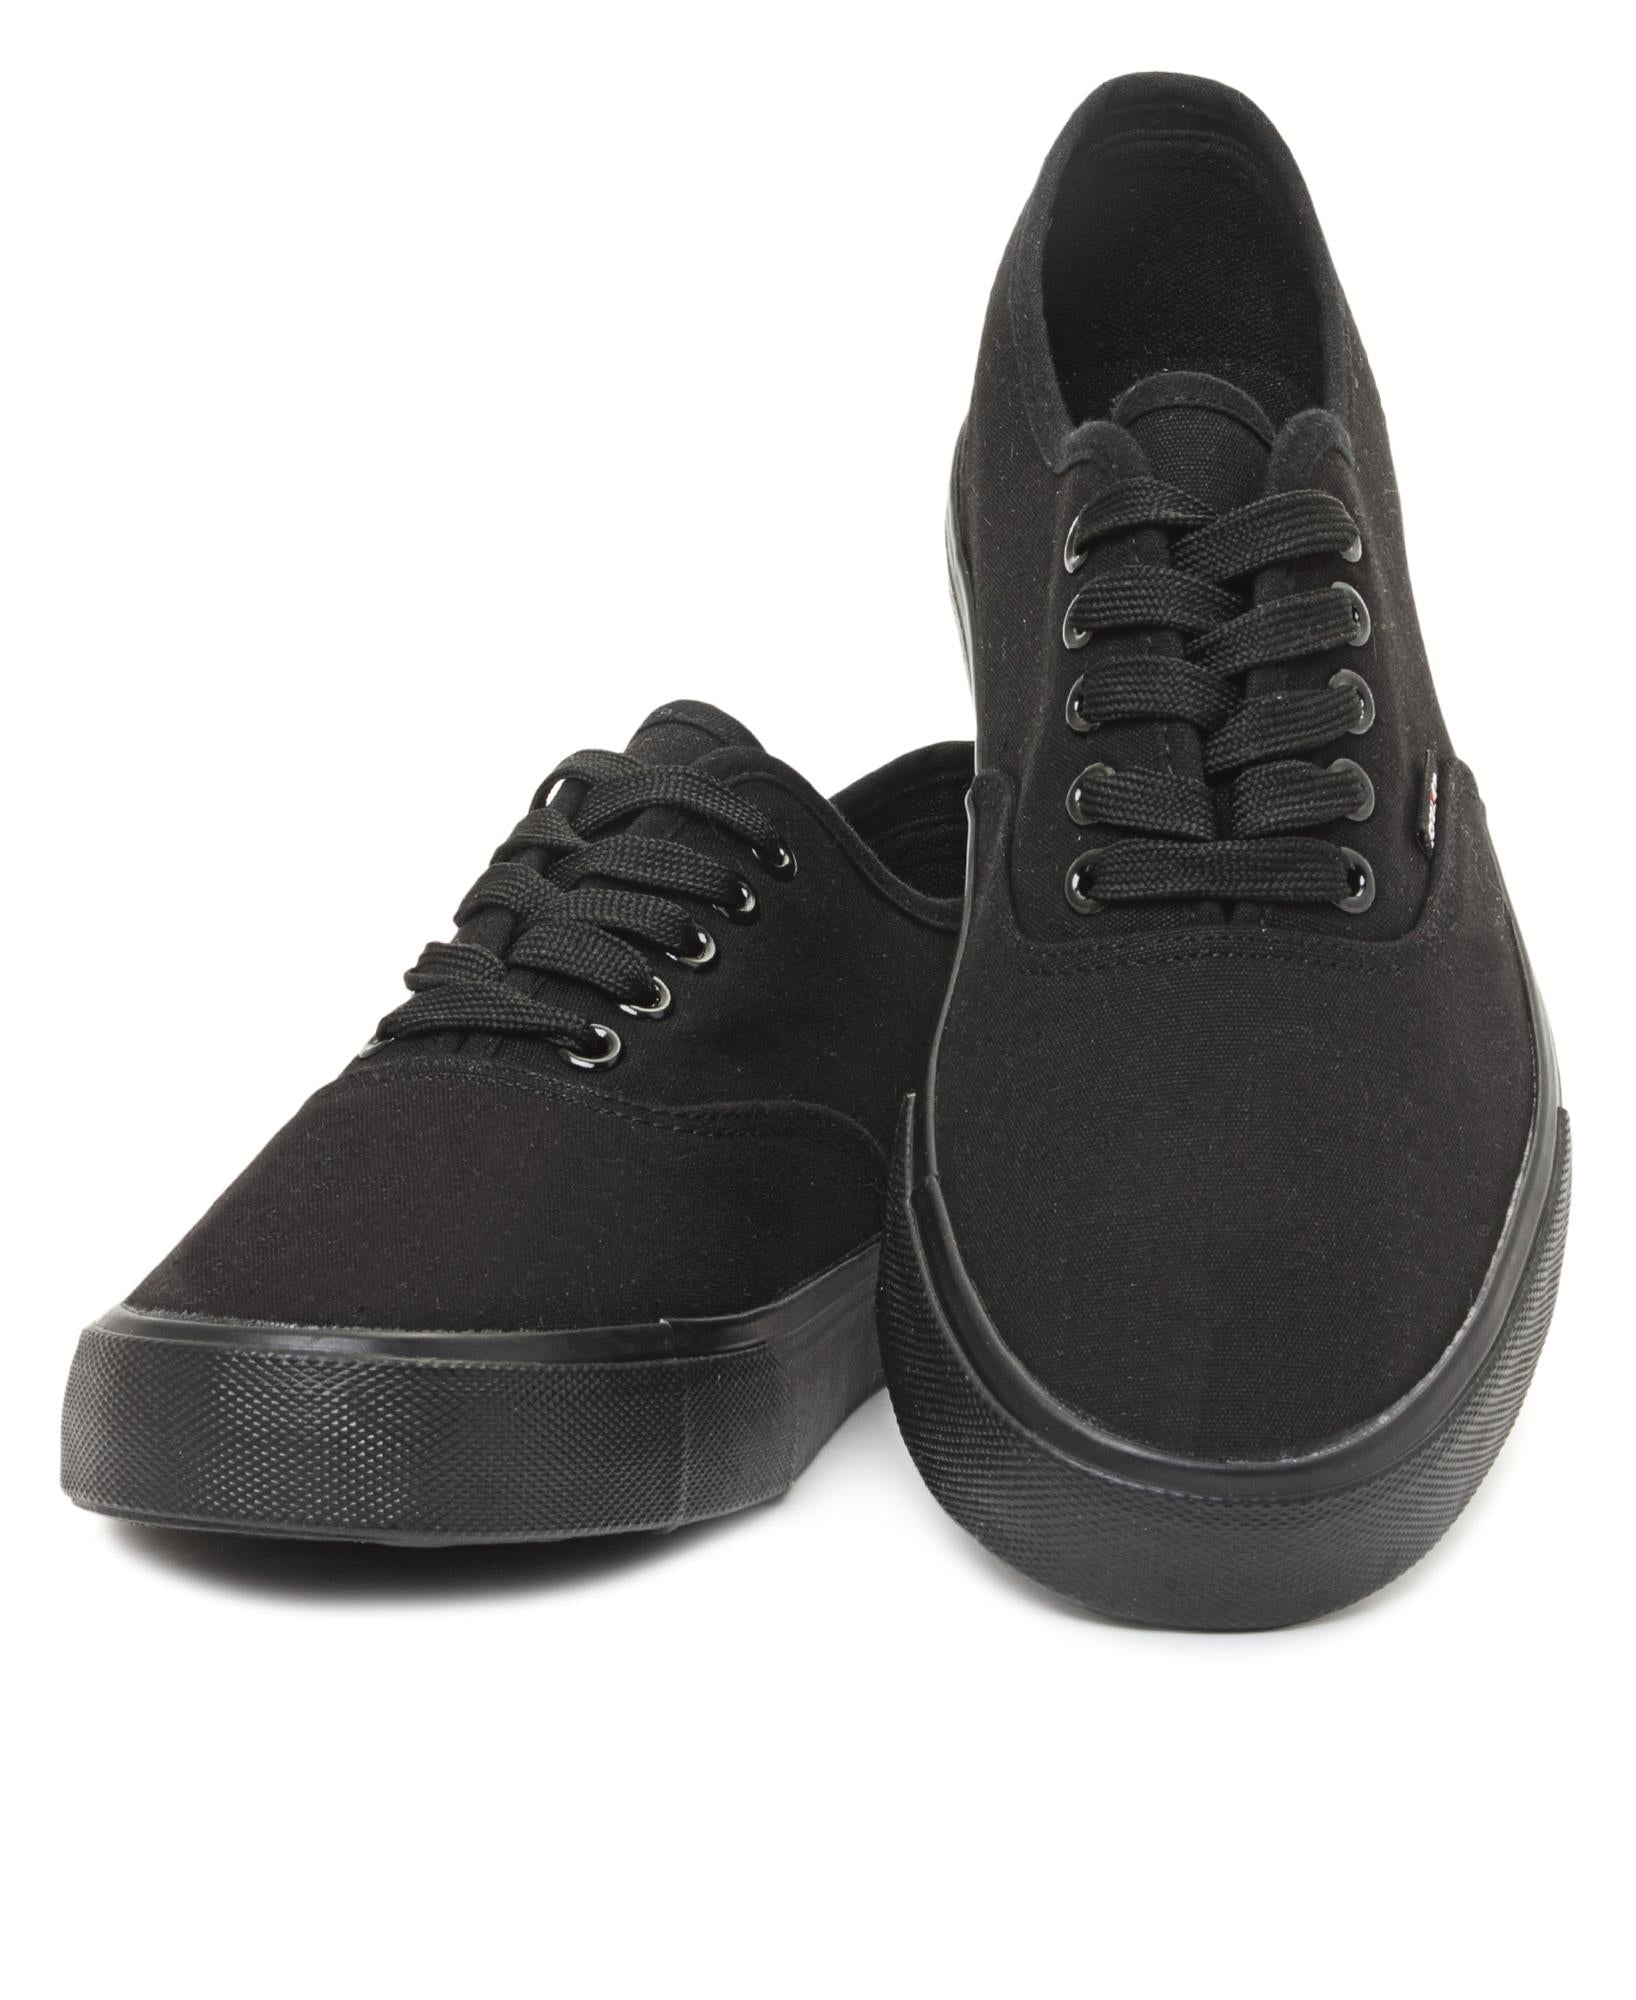 Men's Barca Sneakers - Black